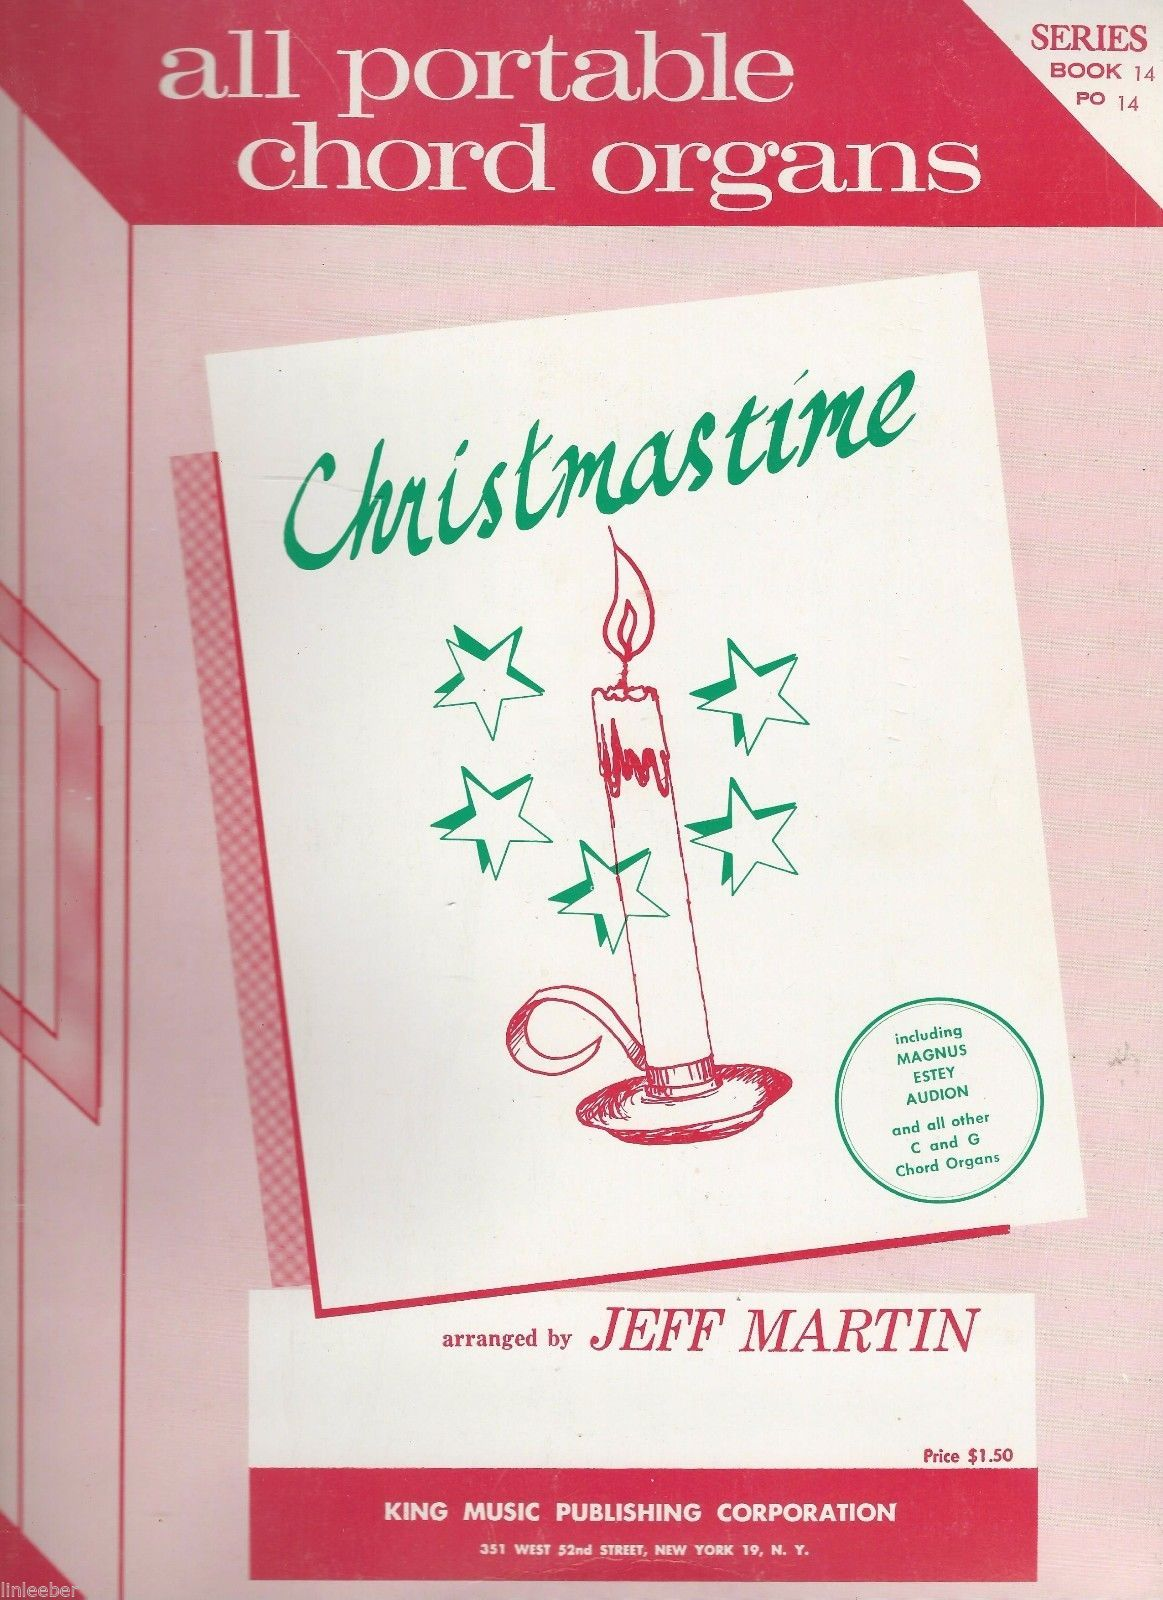 Christmastime: All Portable Chord Organs; arranged by Jeff Martin;Series,Book 14